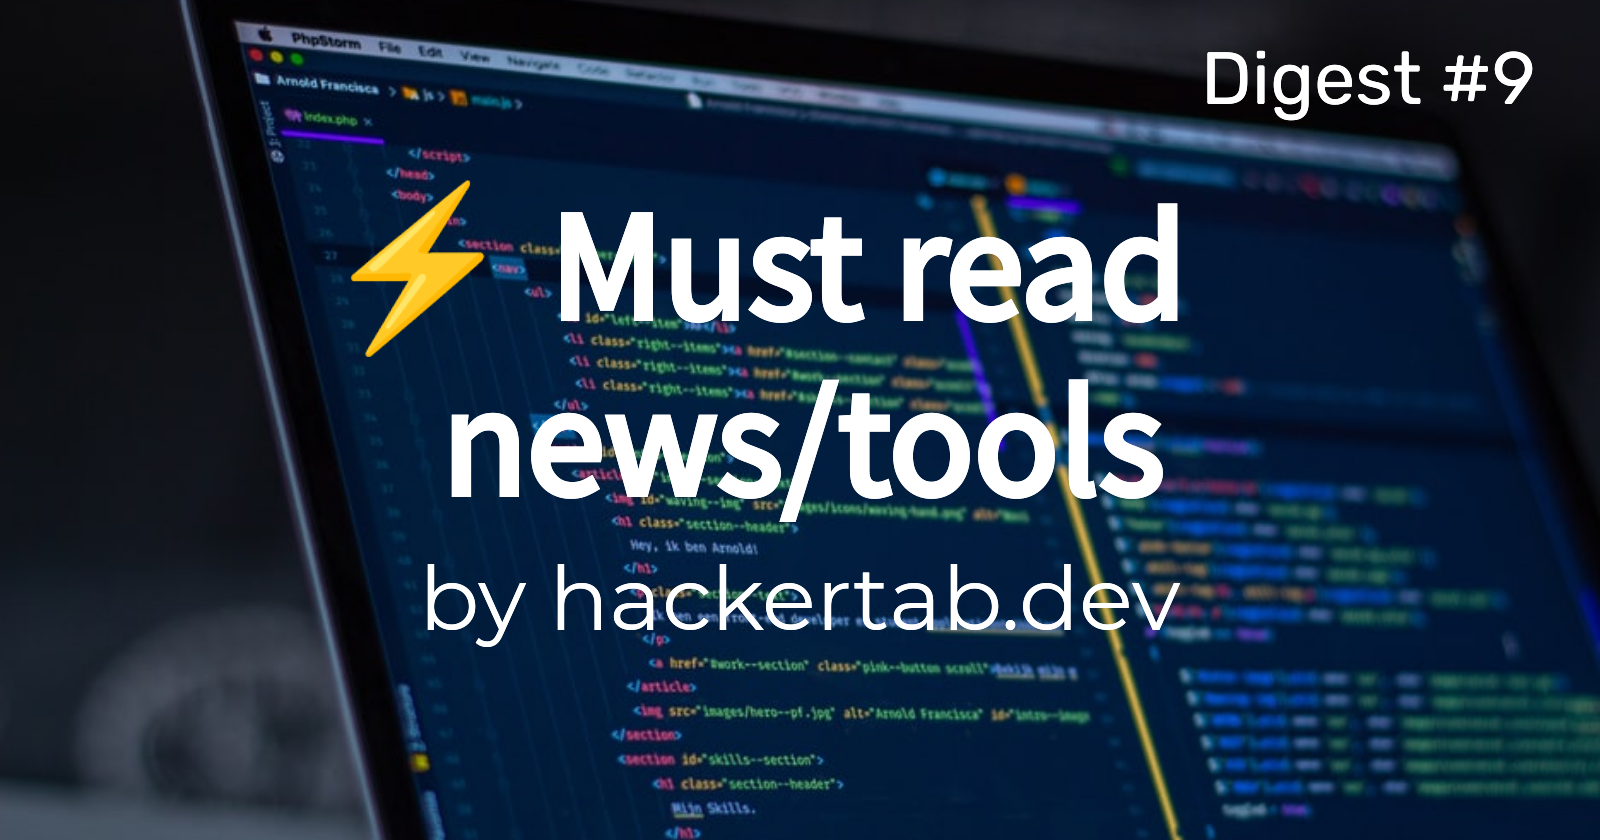 ⚡ Must read Tech news/tools of the day - Digest #9